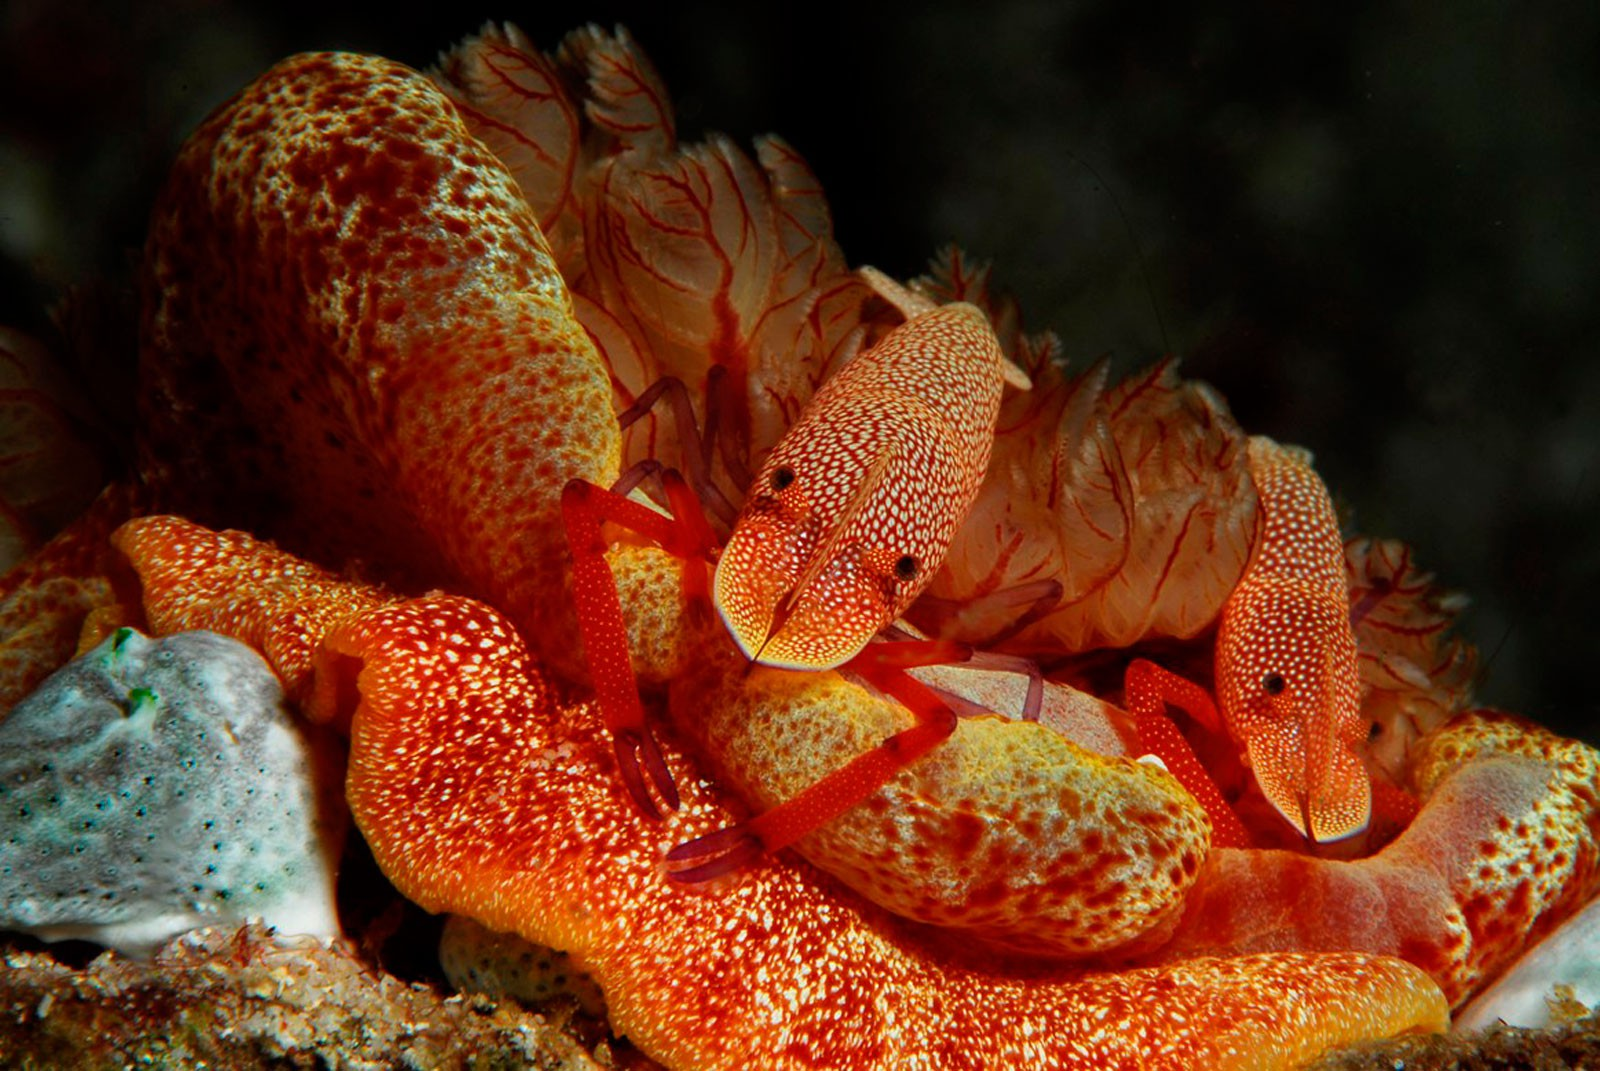 Imperator Shrimps riding Spanish Dancer, photo: Mario Pauk (October 2010)